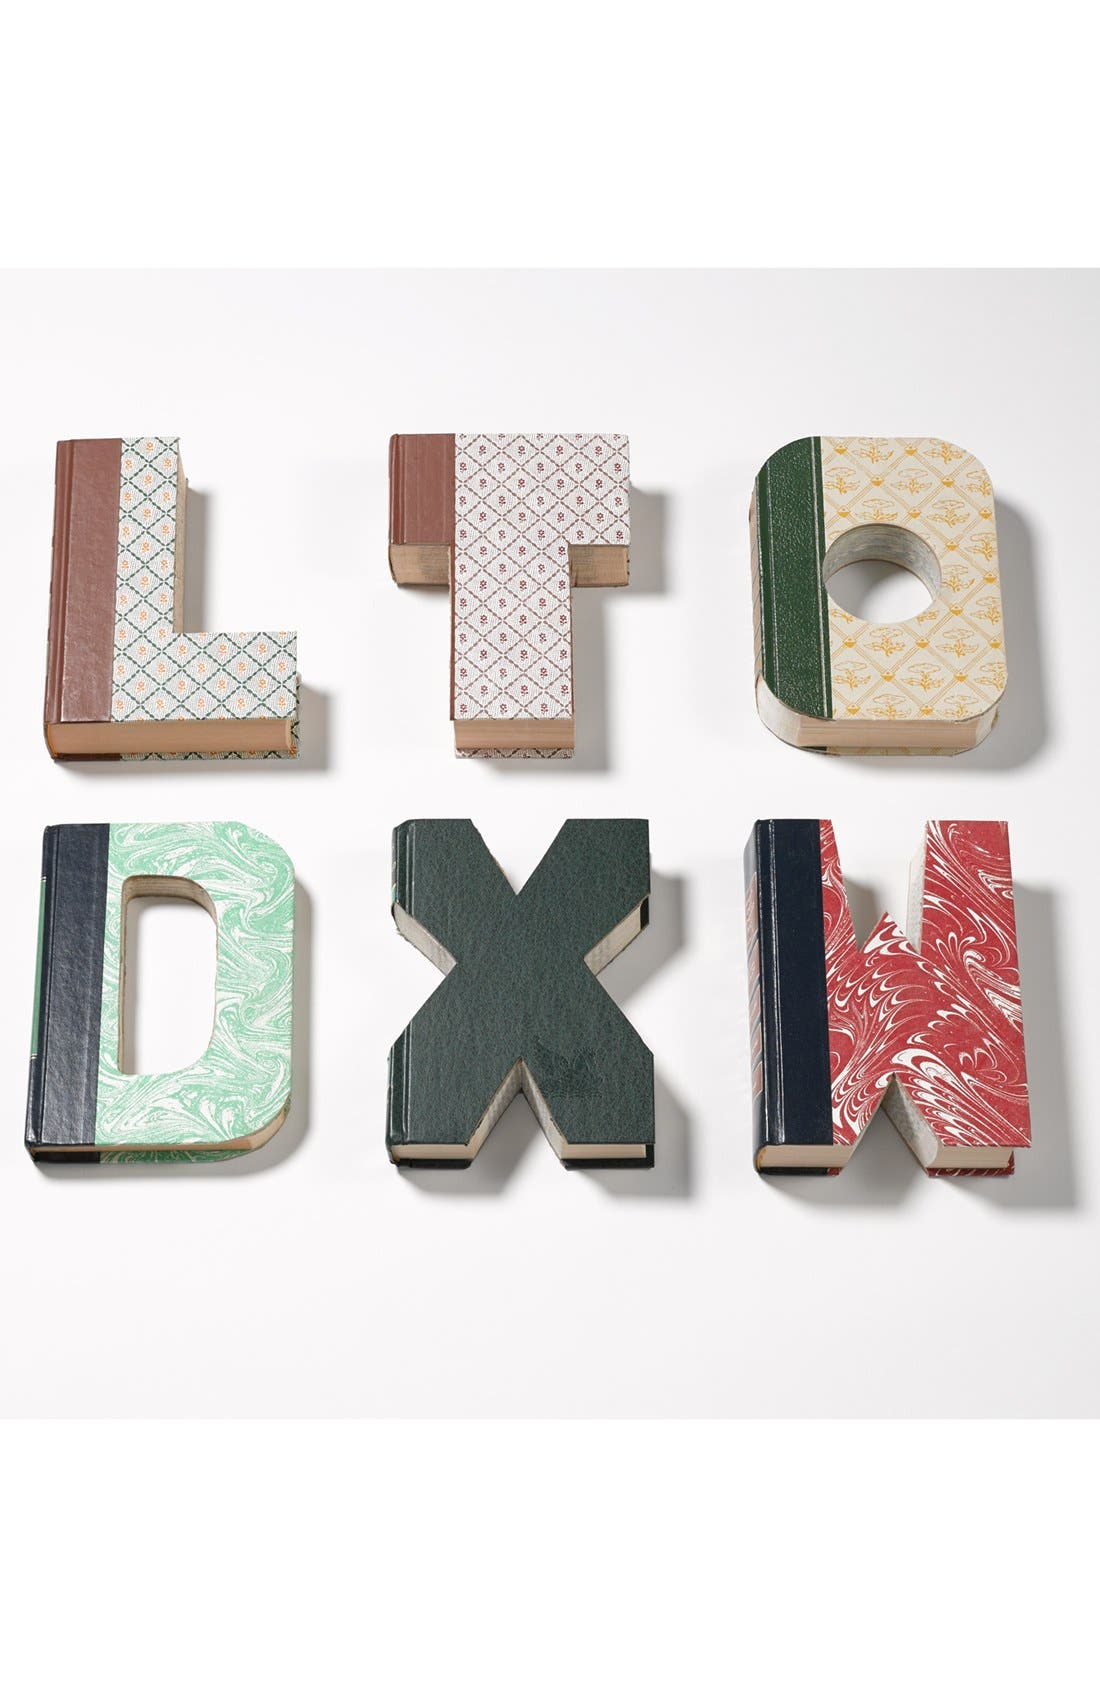 'One of a Kind Letter' Hand-Carved Recycled Book Shelf Art,                             Alternate thumbnail 3, color,                             200